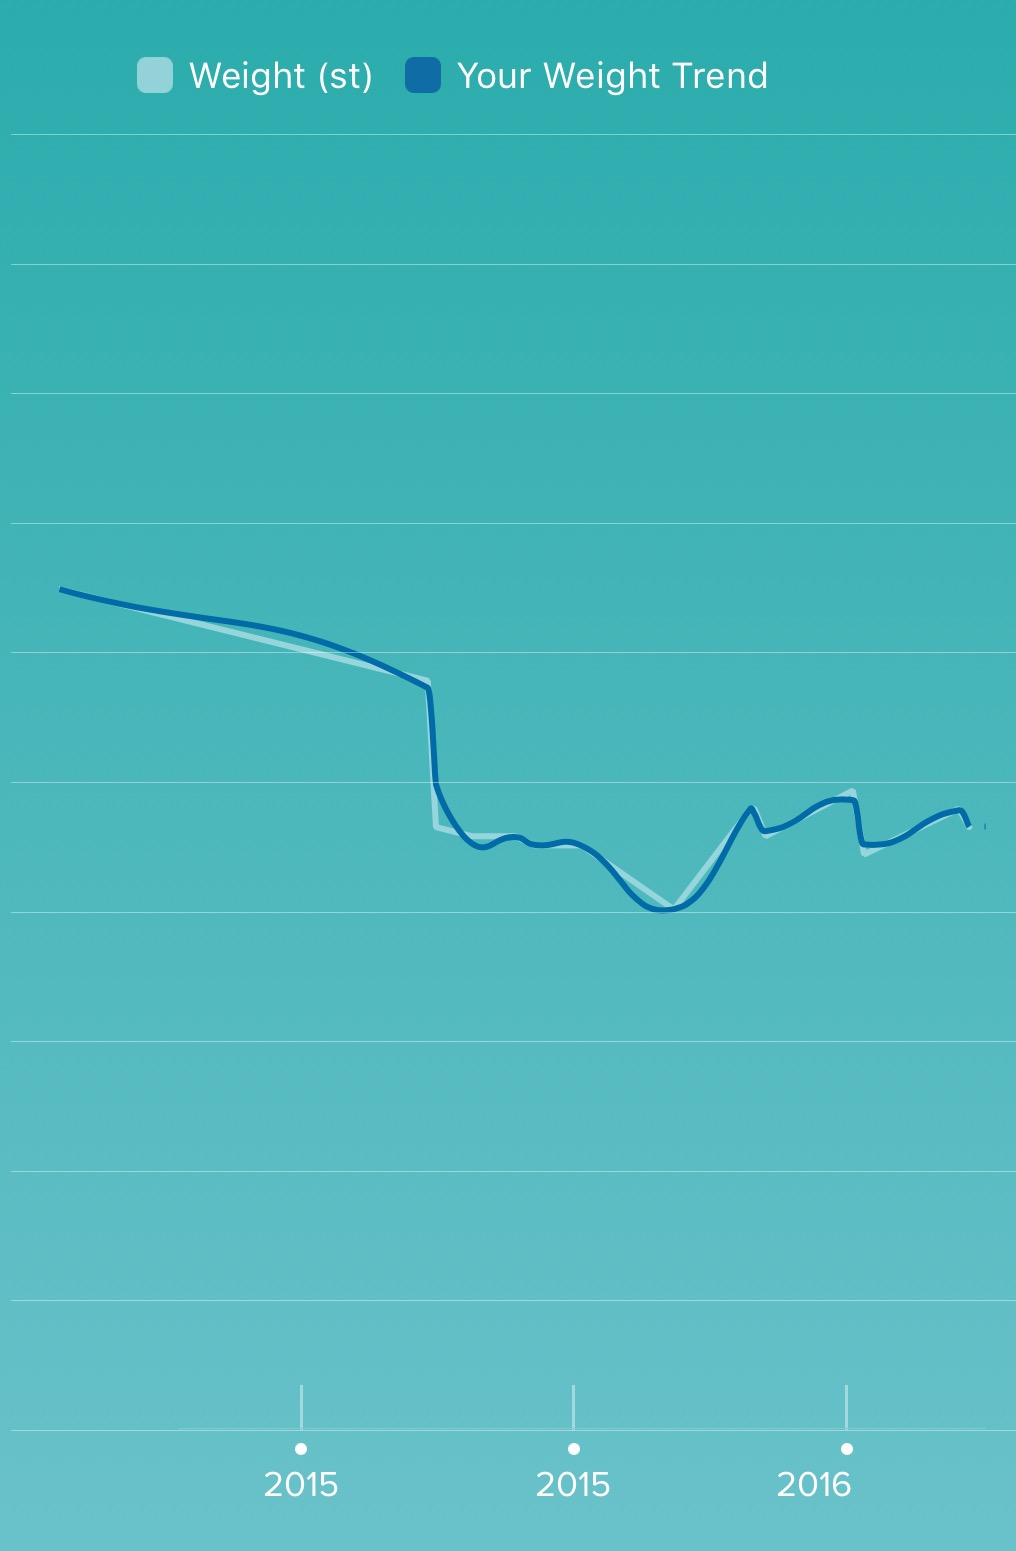 Fitbit Weight Graph